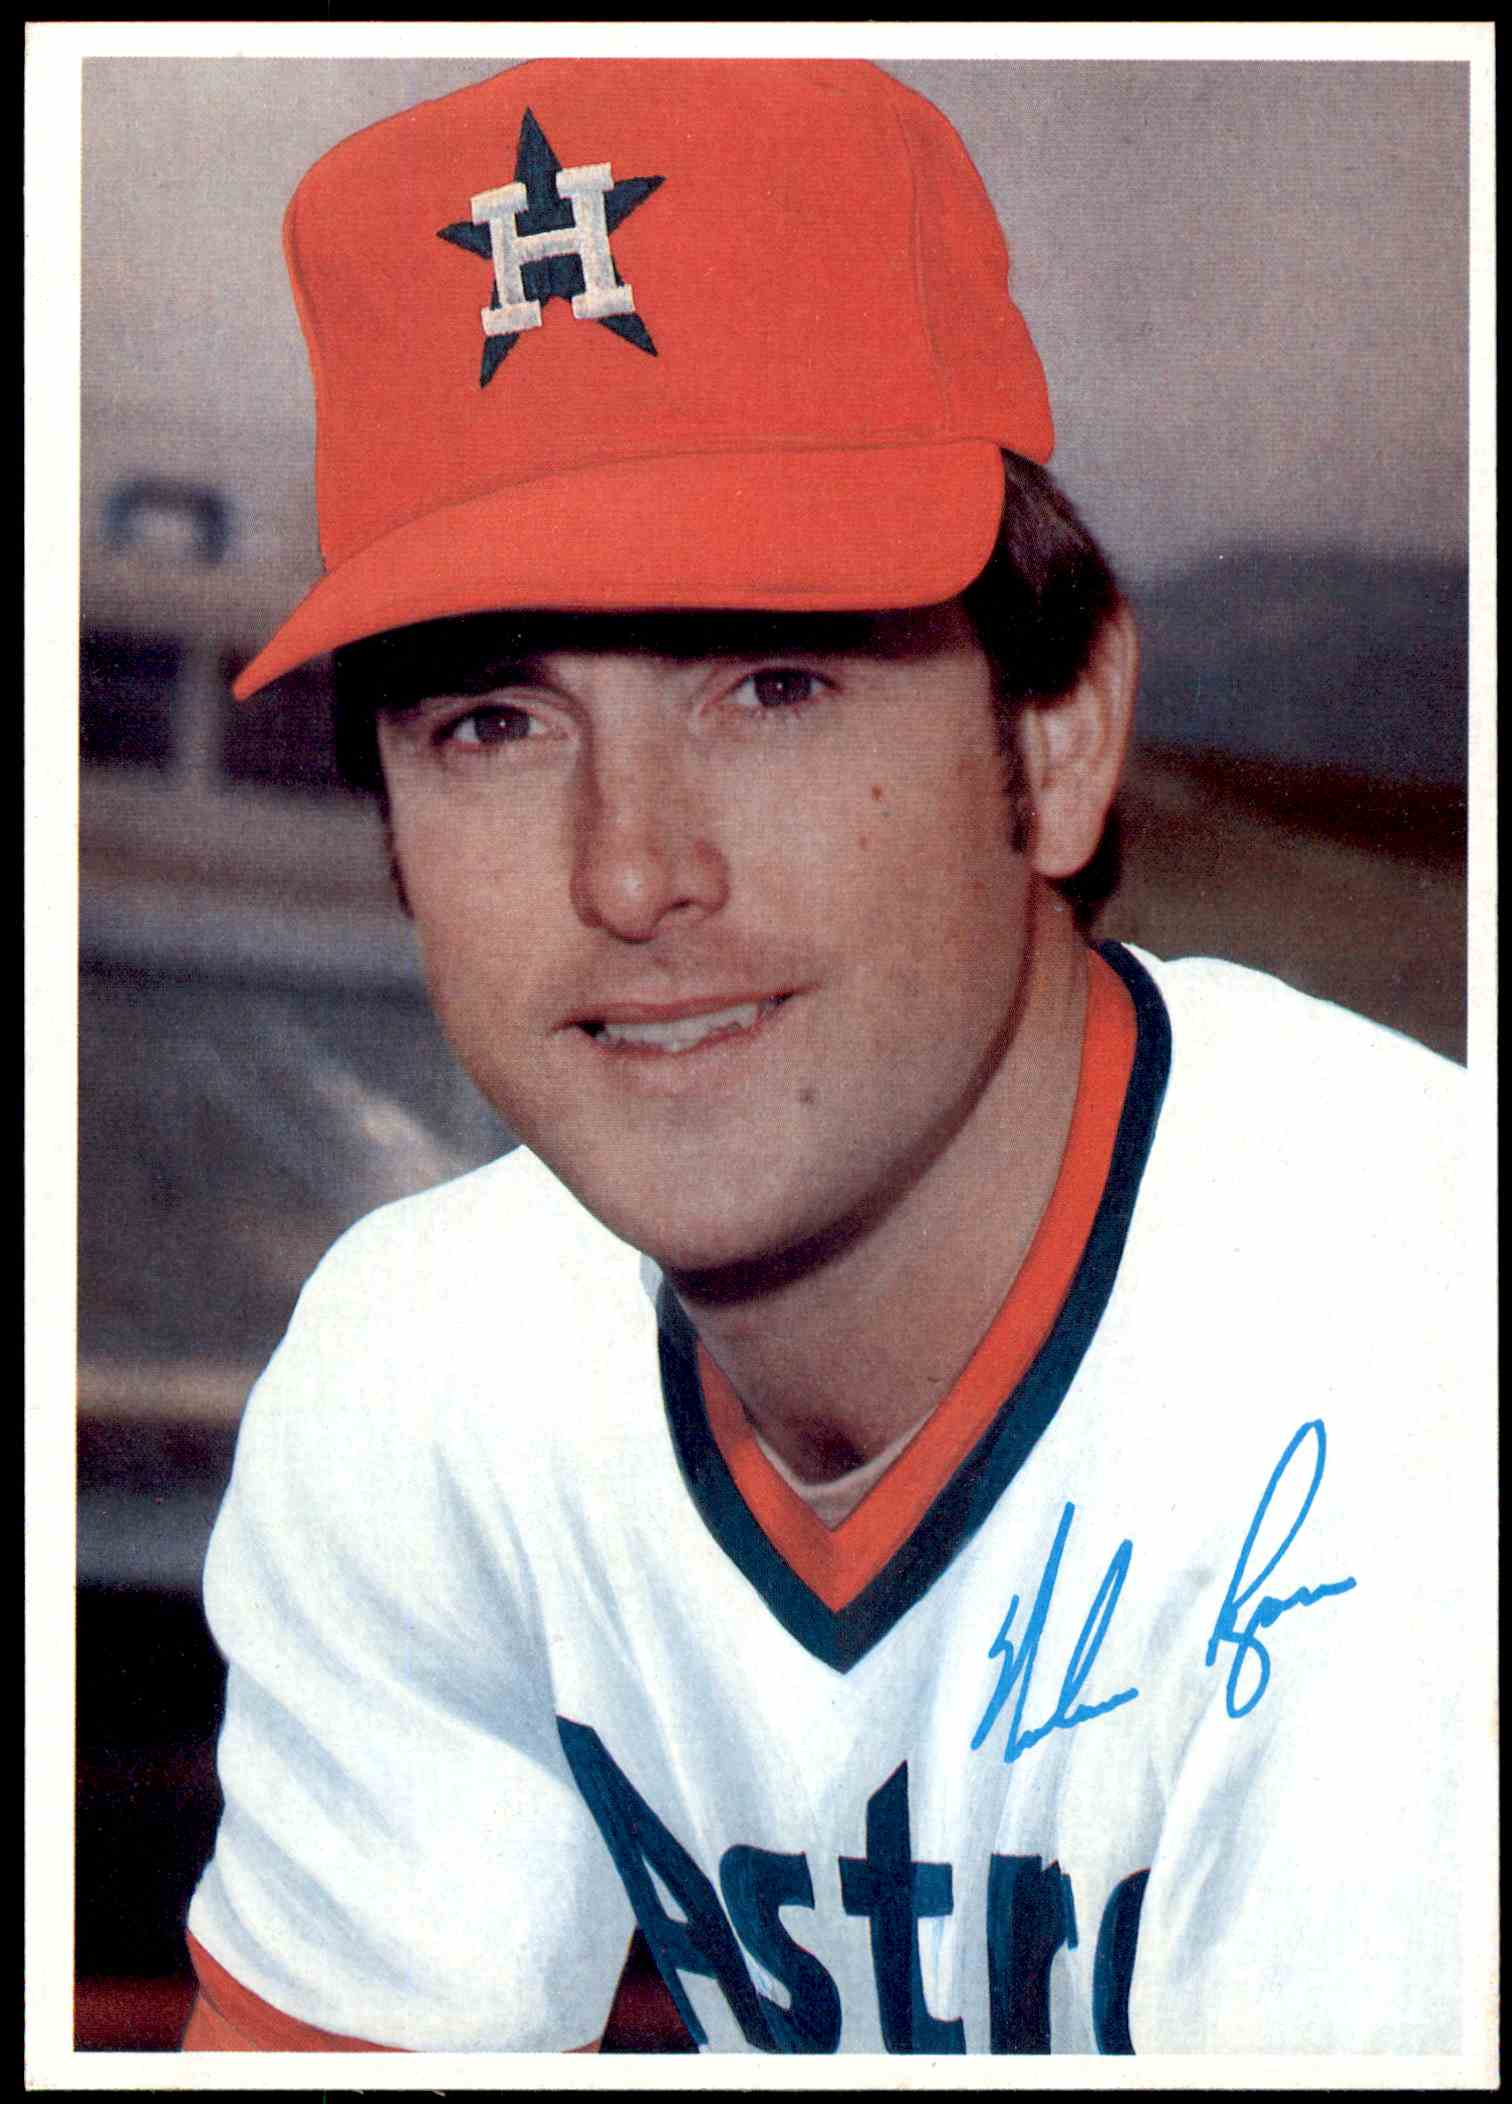 baseball benchmark setting with lynn nolan ryan jr Lynn nolan ryan, jr (born january 31, 1947) is a former major league baseball pitcher he currently is a part-owner of the texas rangers, for whom he serves as team president values.